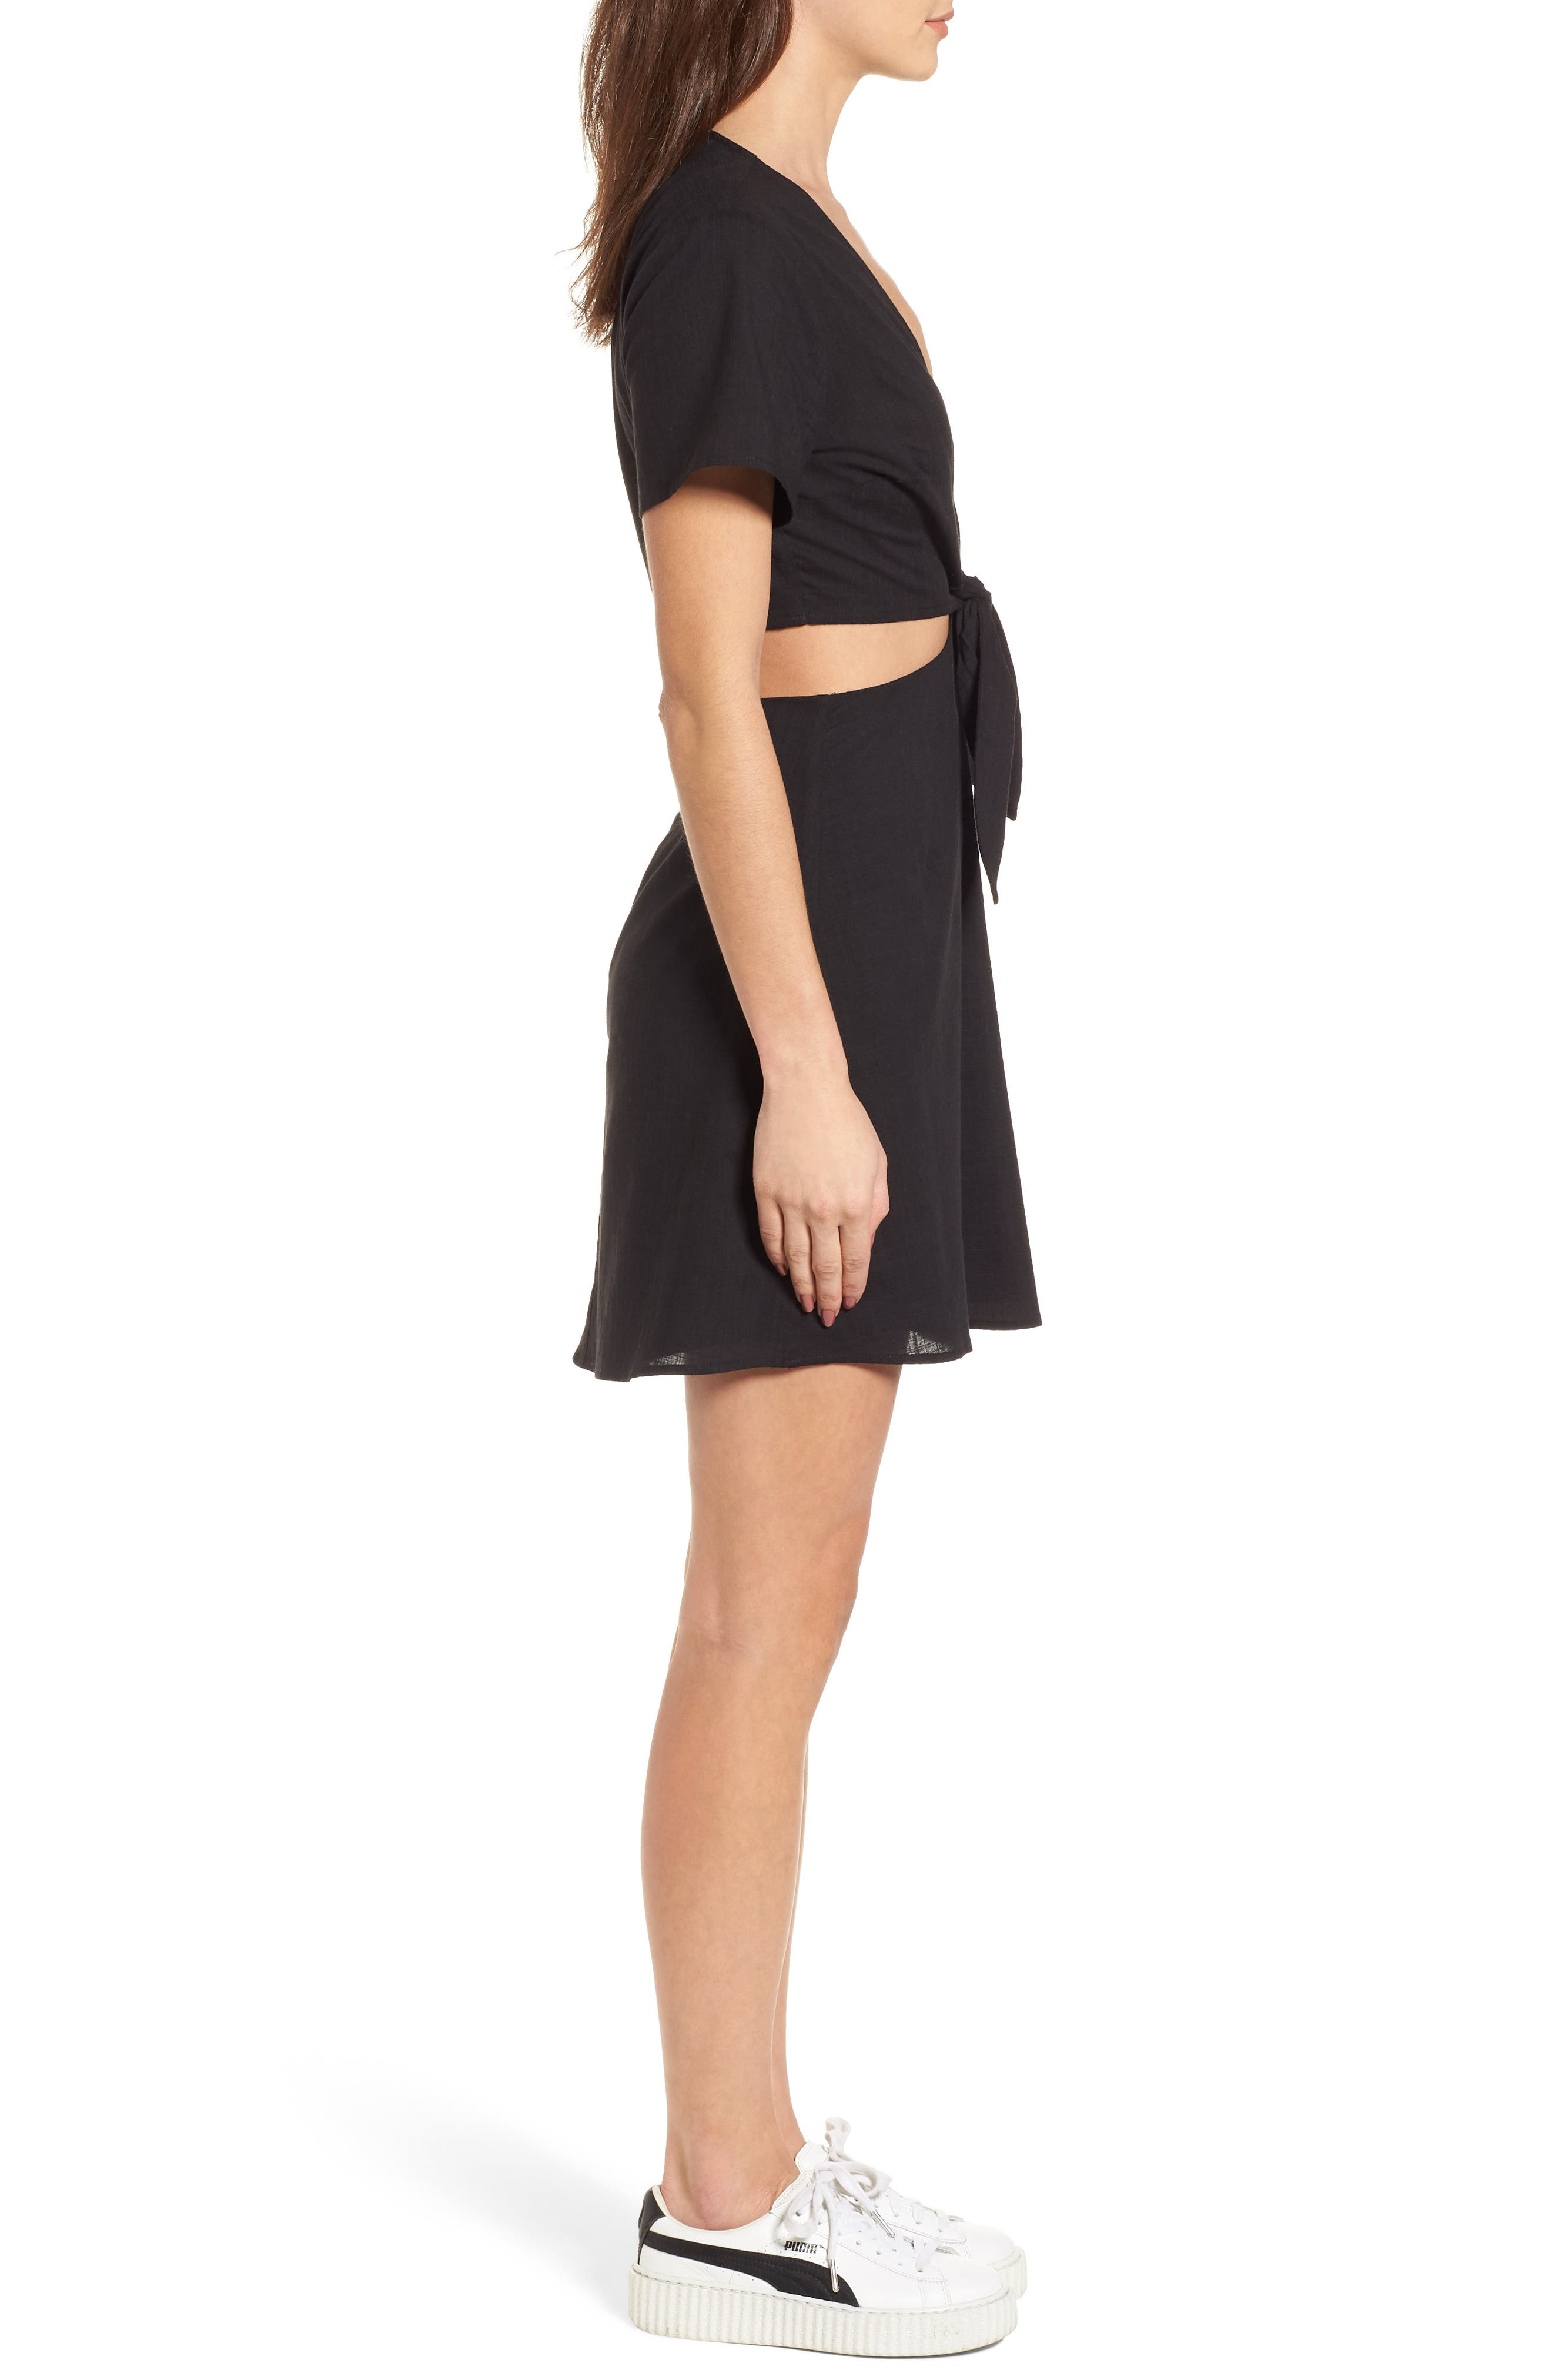 Emily Cutout Minidress,                             Alternate thumbnail 3, color,                             Black